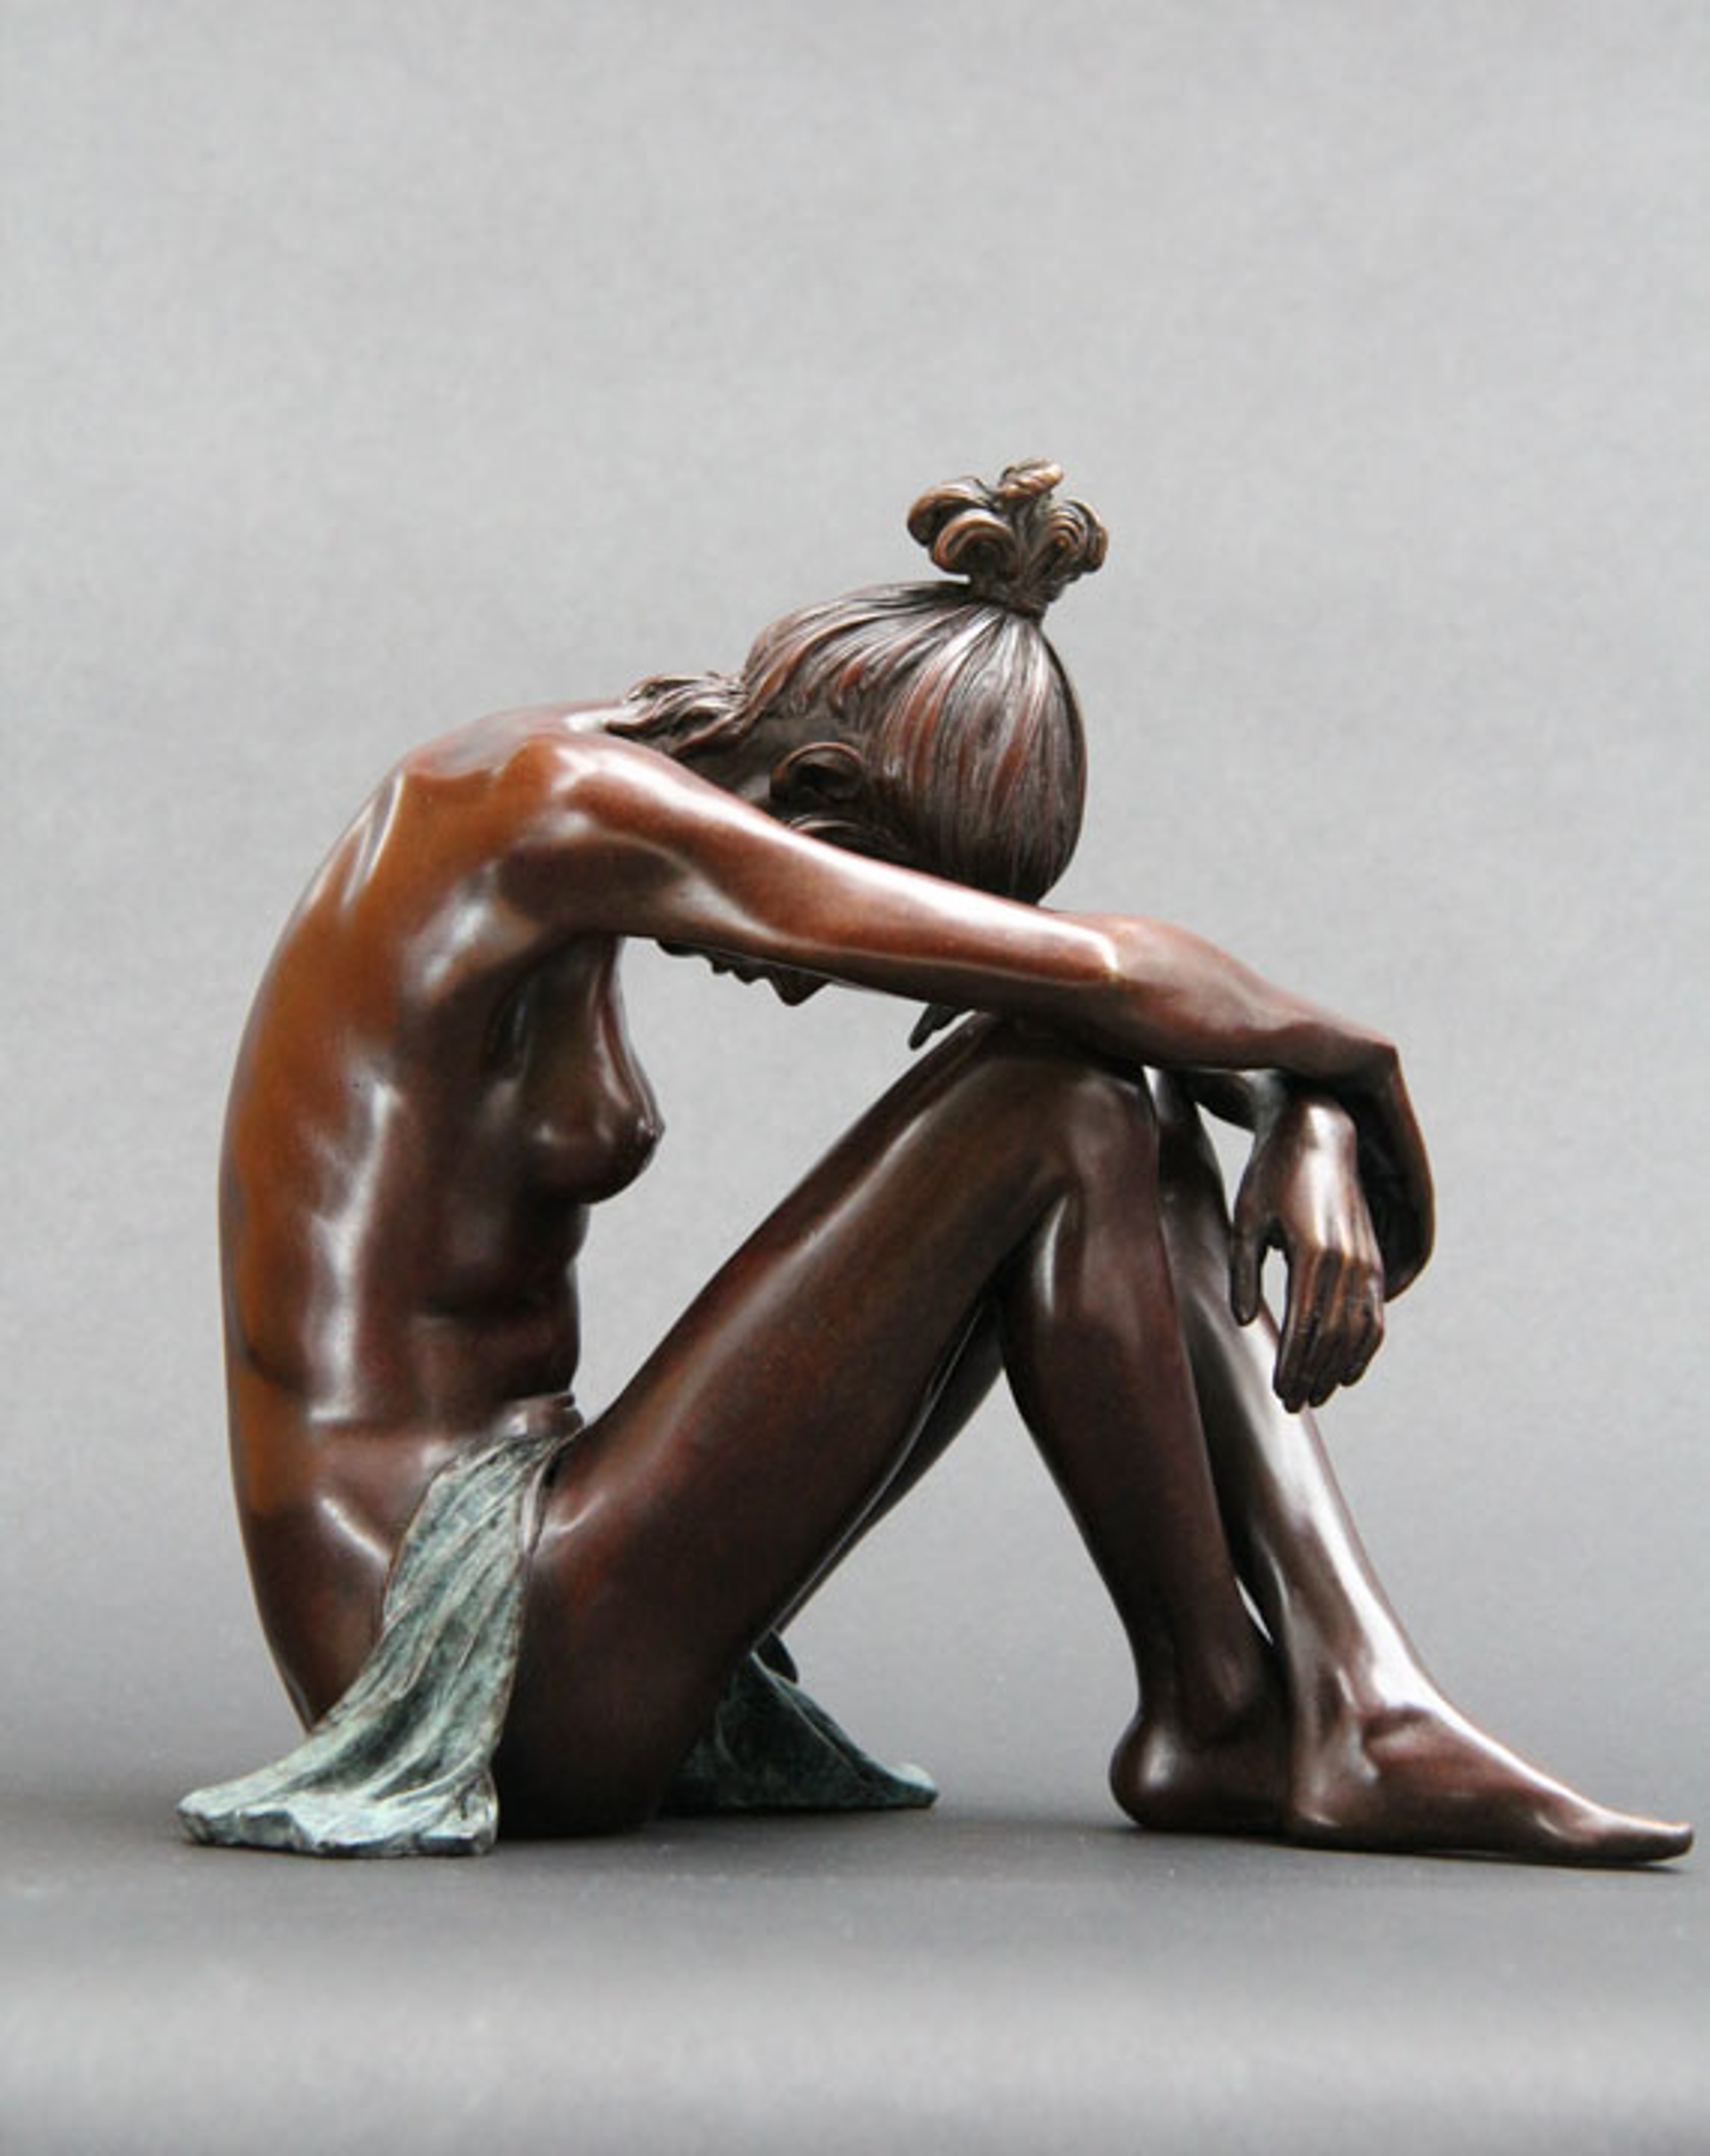 Bather - Midday Sun by Michael Talbot